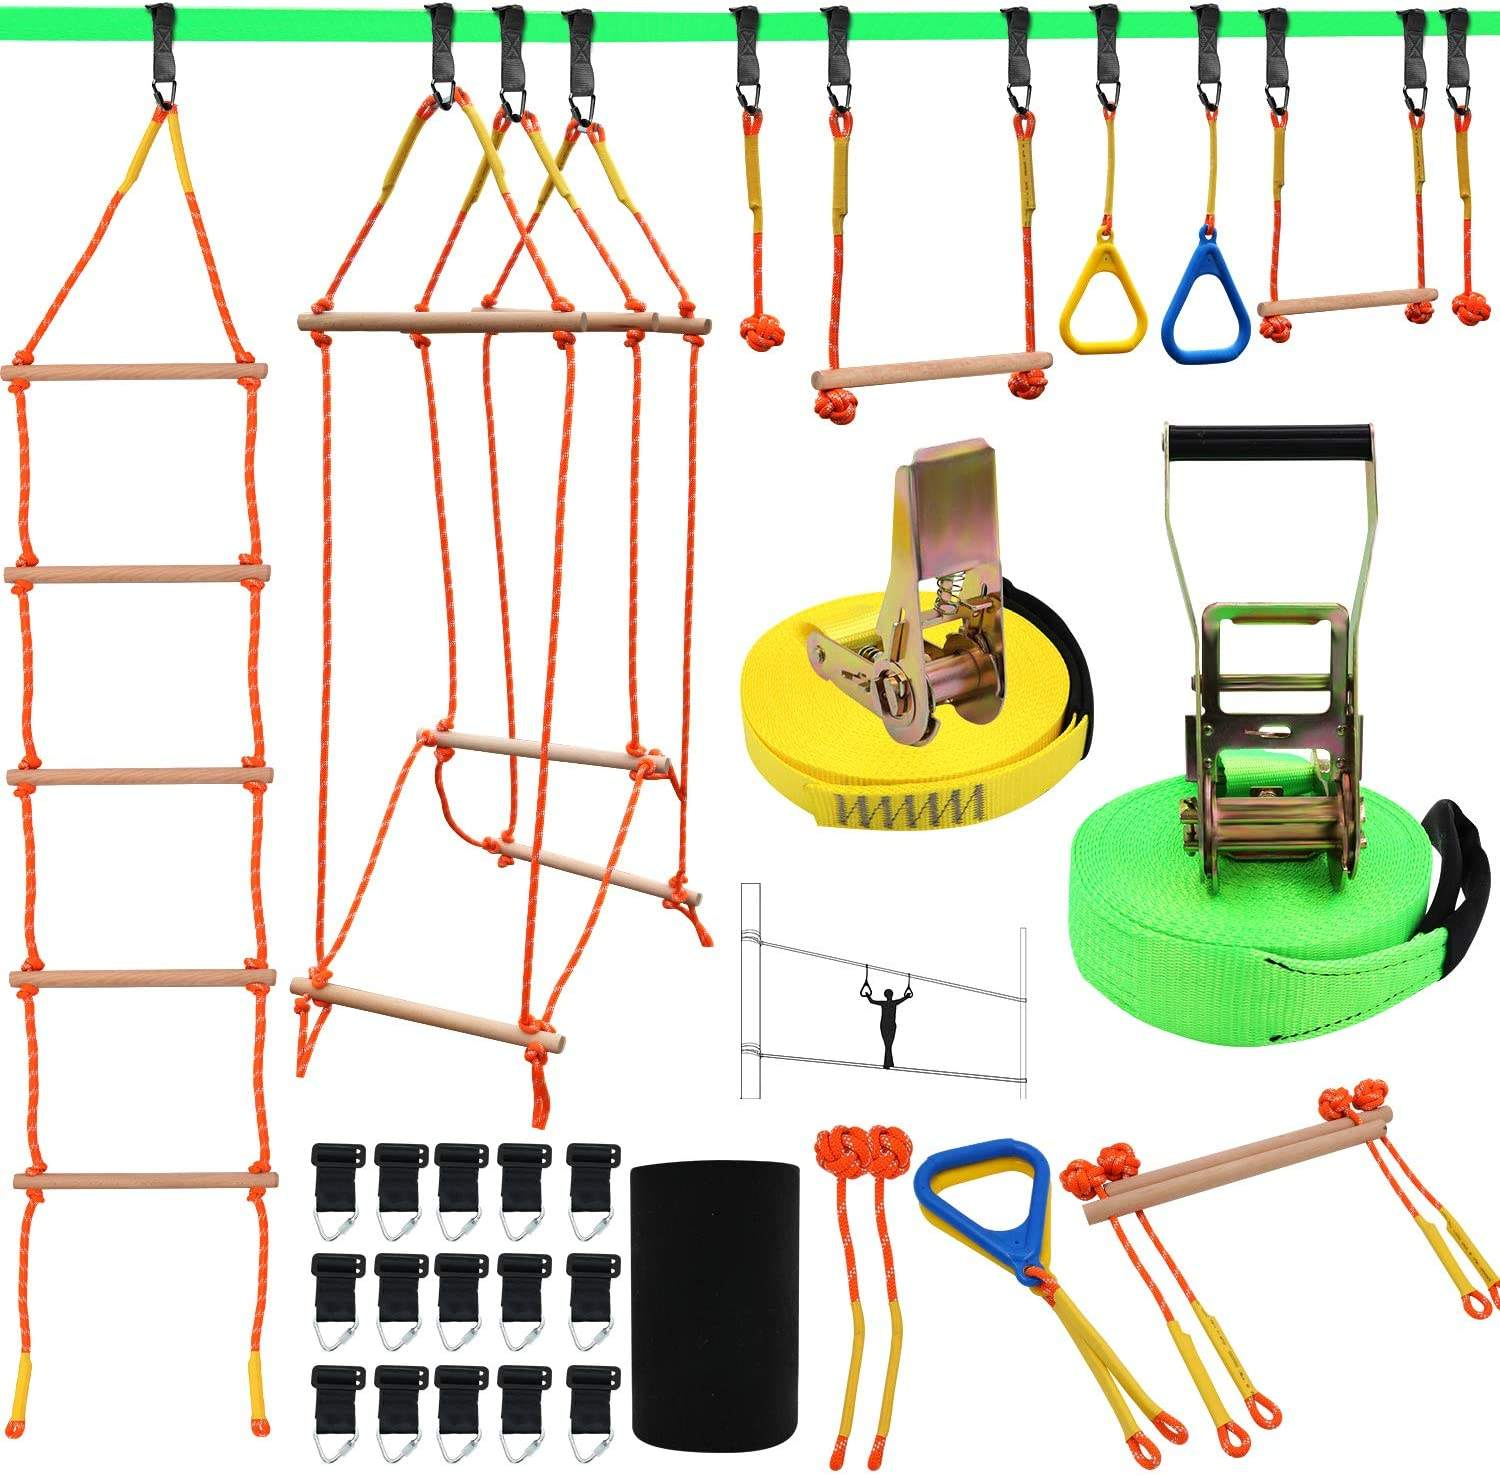 Ninja Warrior Obstacle Course For Kids Slackline Kit Ninja Line Training Equipment For Backyard Outdoor